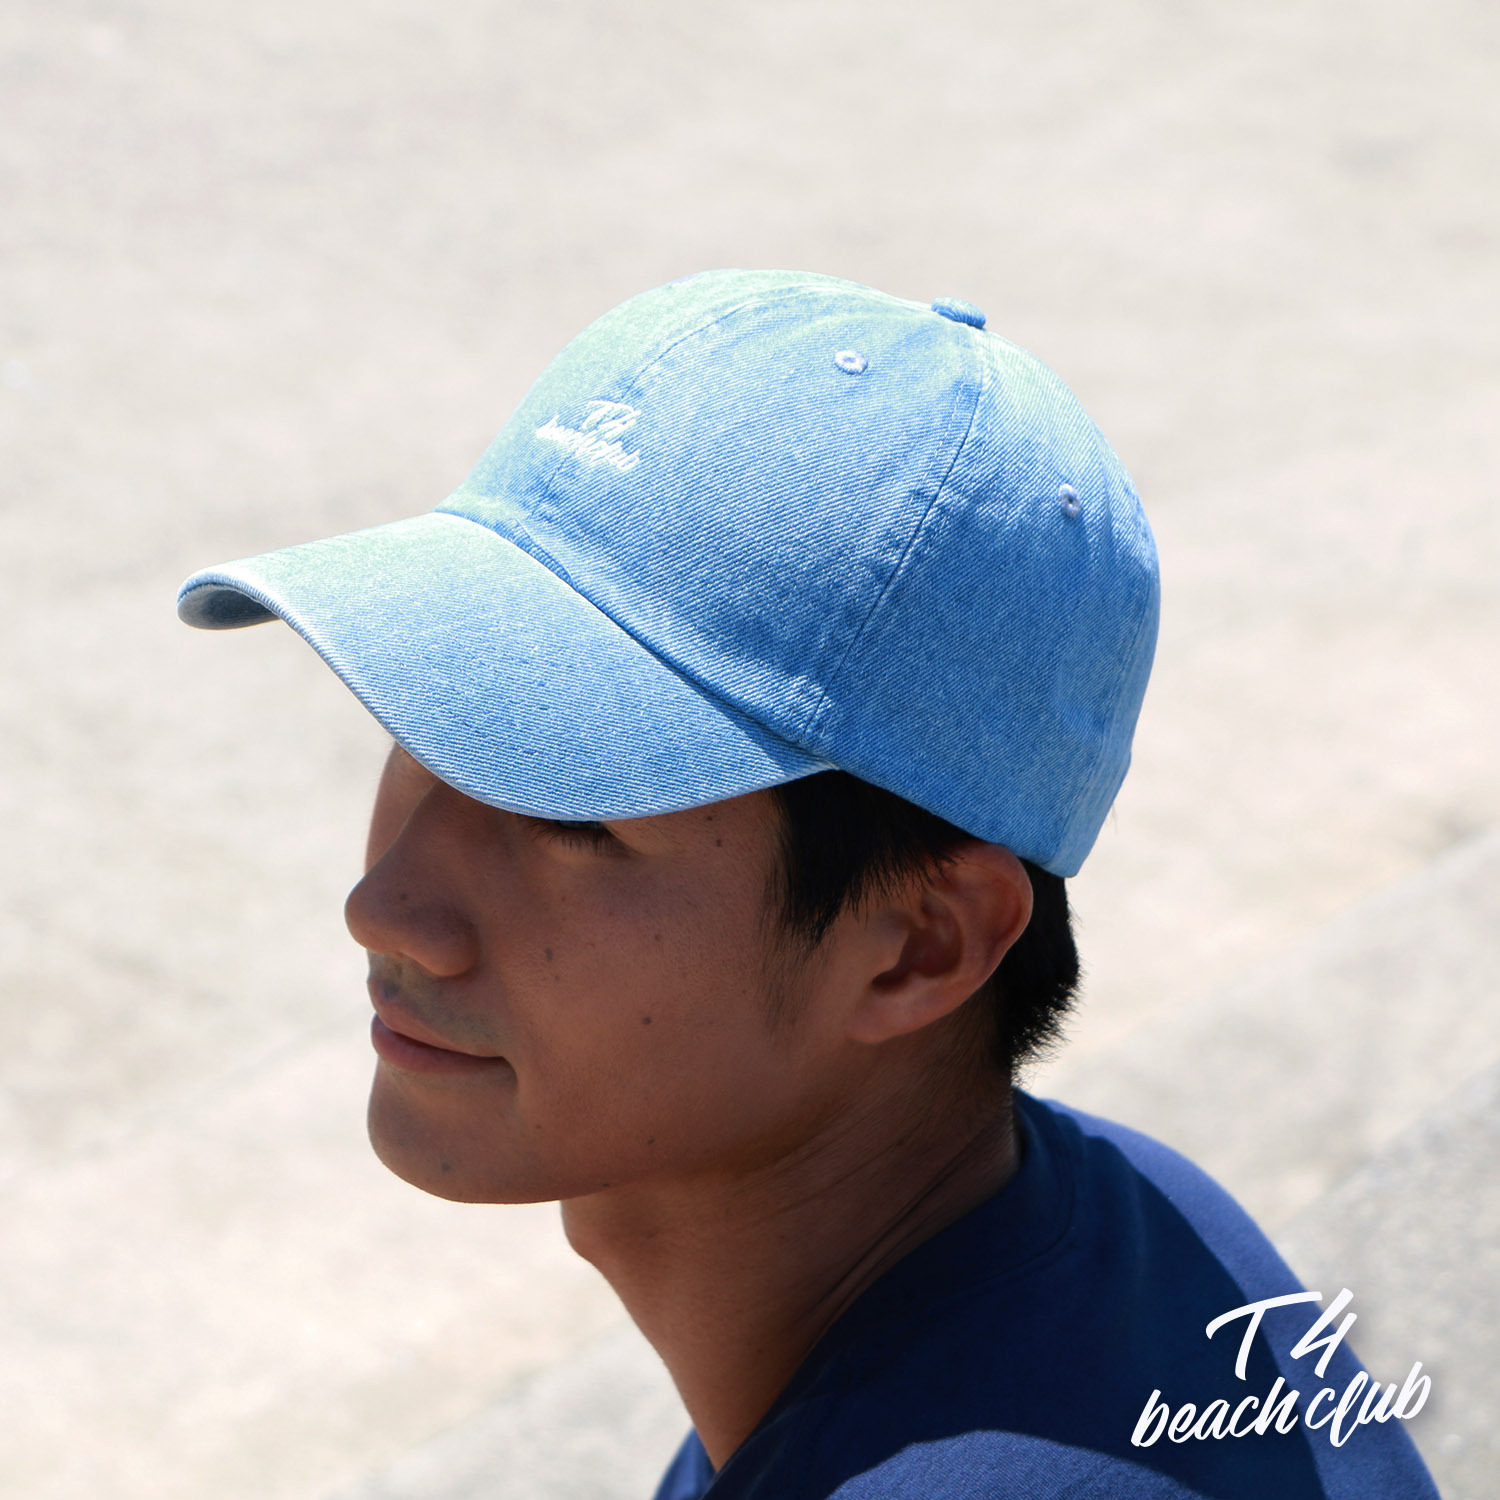 【TF006】 T4beachclub 6PANEL DENIM CAP